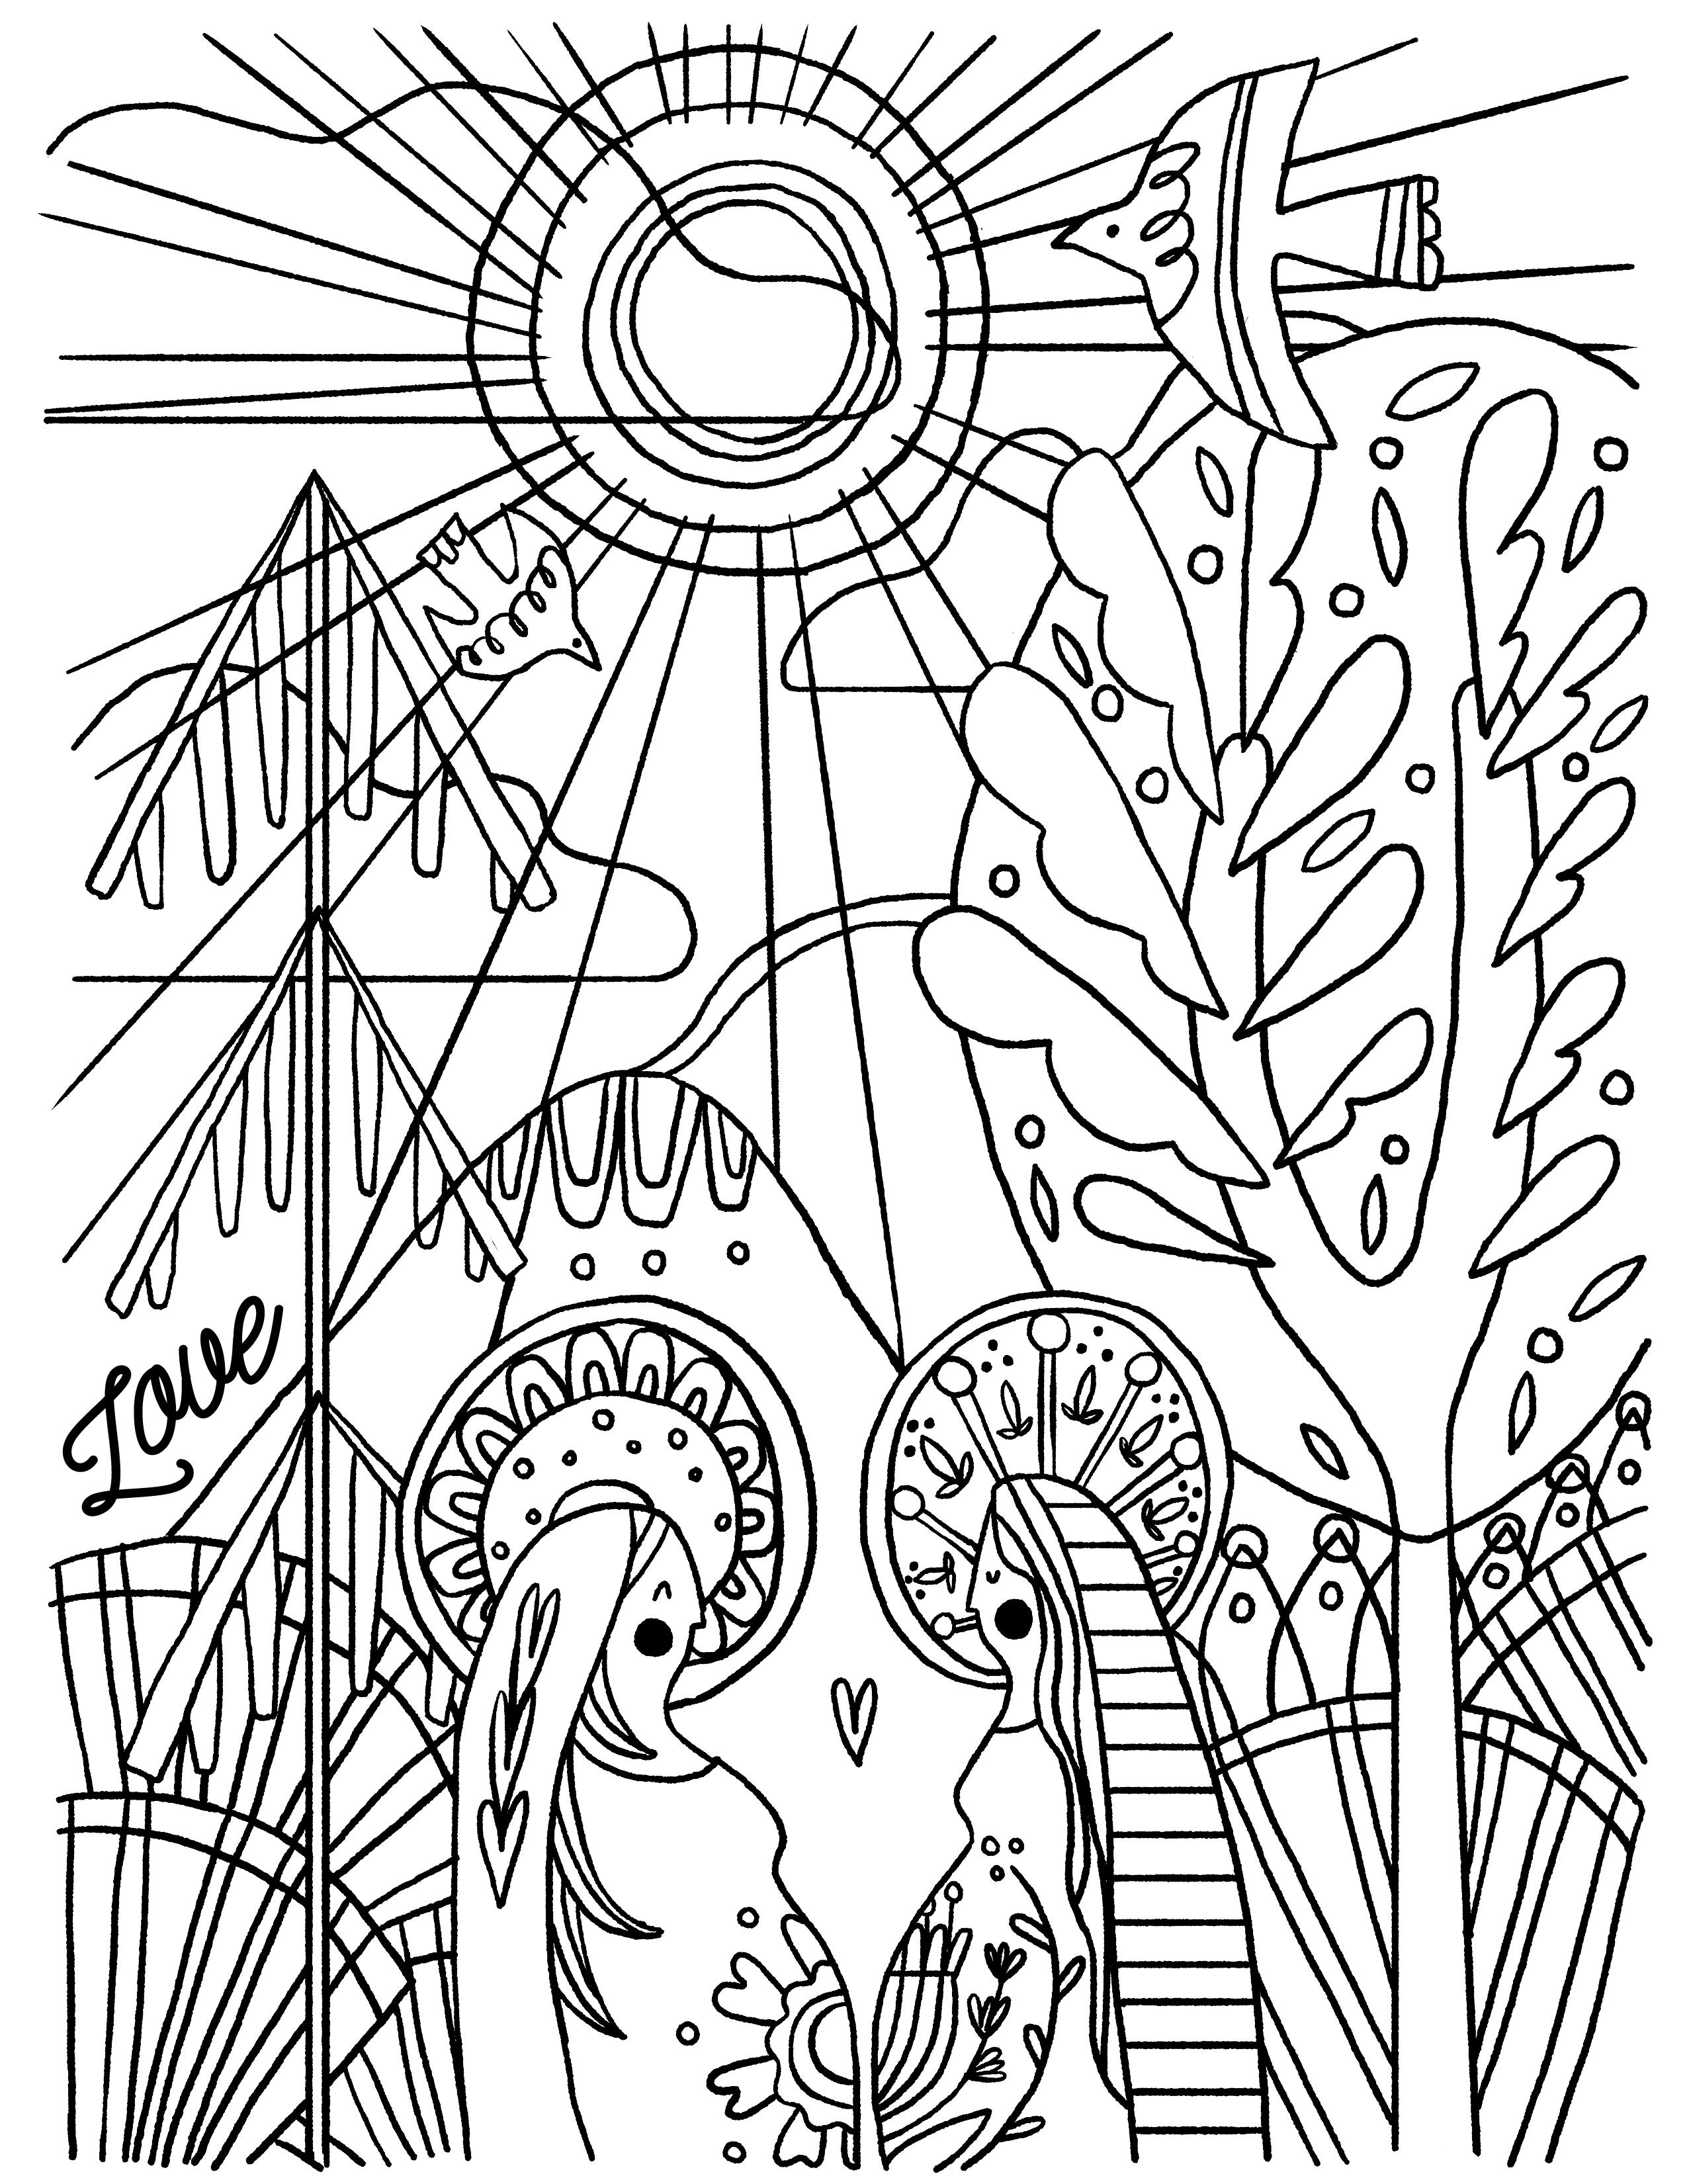 advent coloring pages - christmas offering video for advent 2017 christian